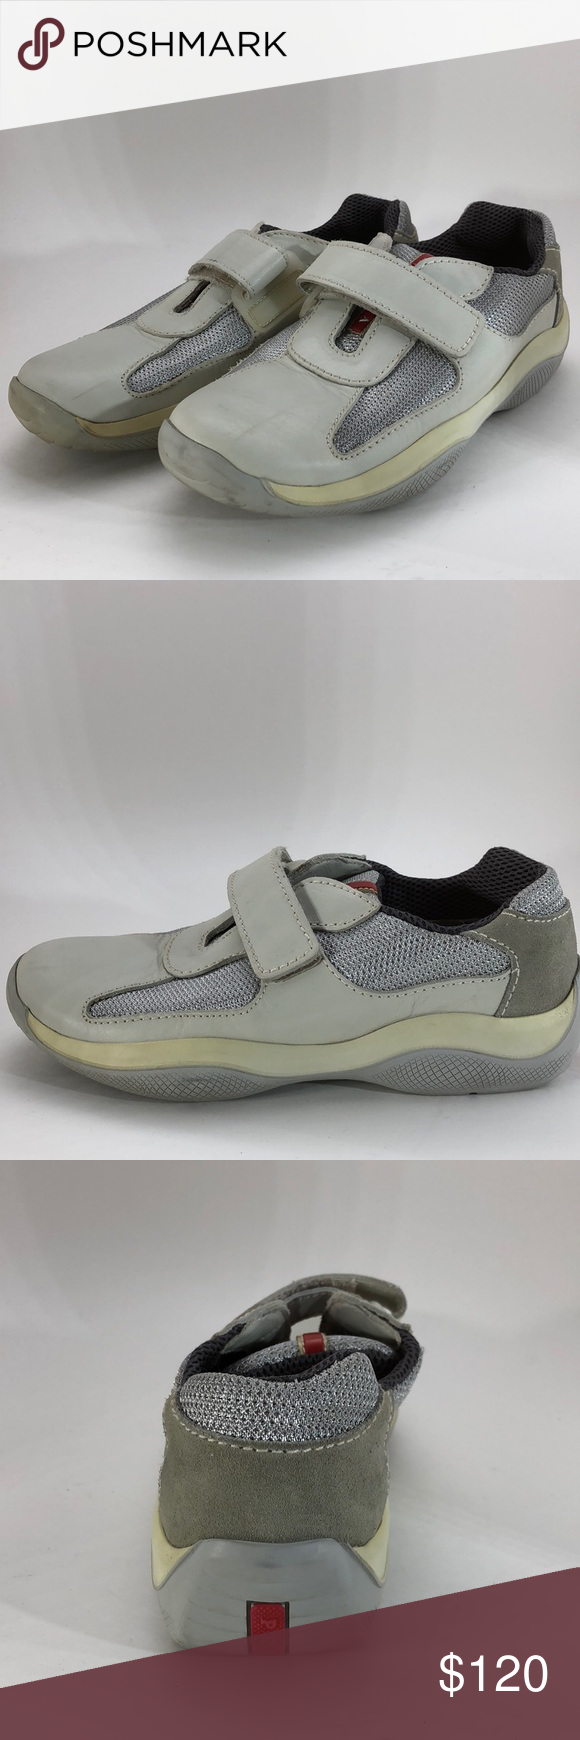 🆕Prada Nevada Bike Argento Velcro Sneakers SZ38.5 Guaranteed Authentic  Condition  Worn once maybe twice   No visible scratches or wear Prada Womens  Nevada ... ff1984dd7c